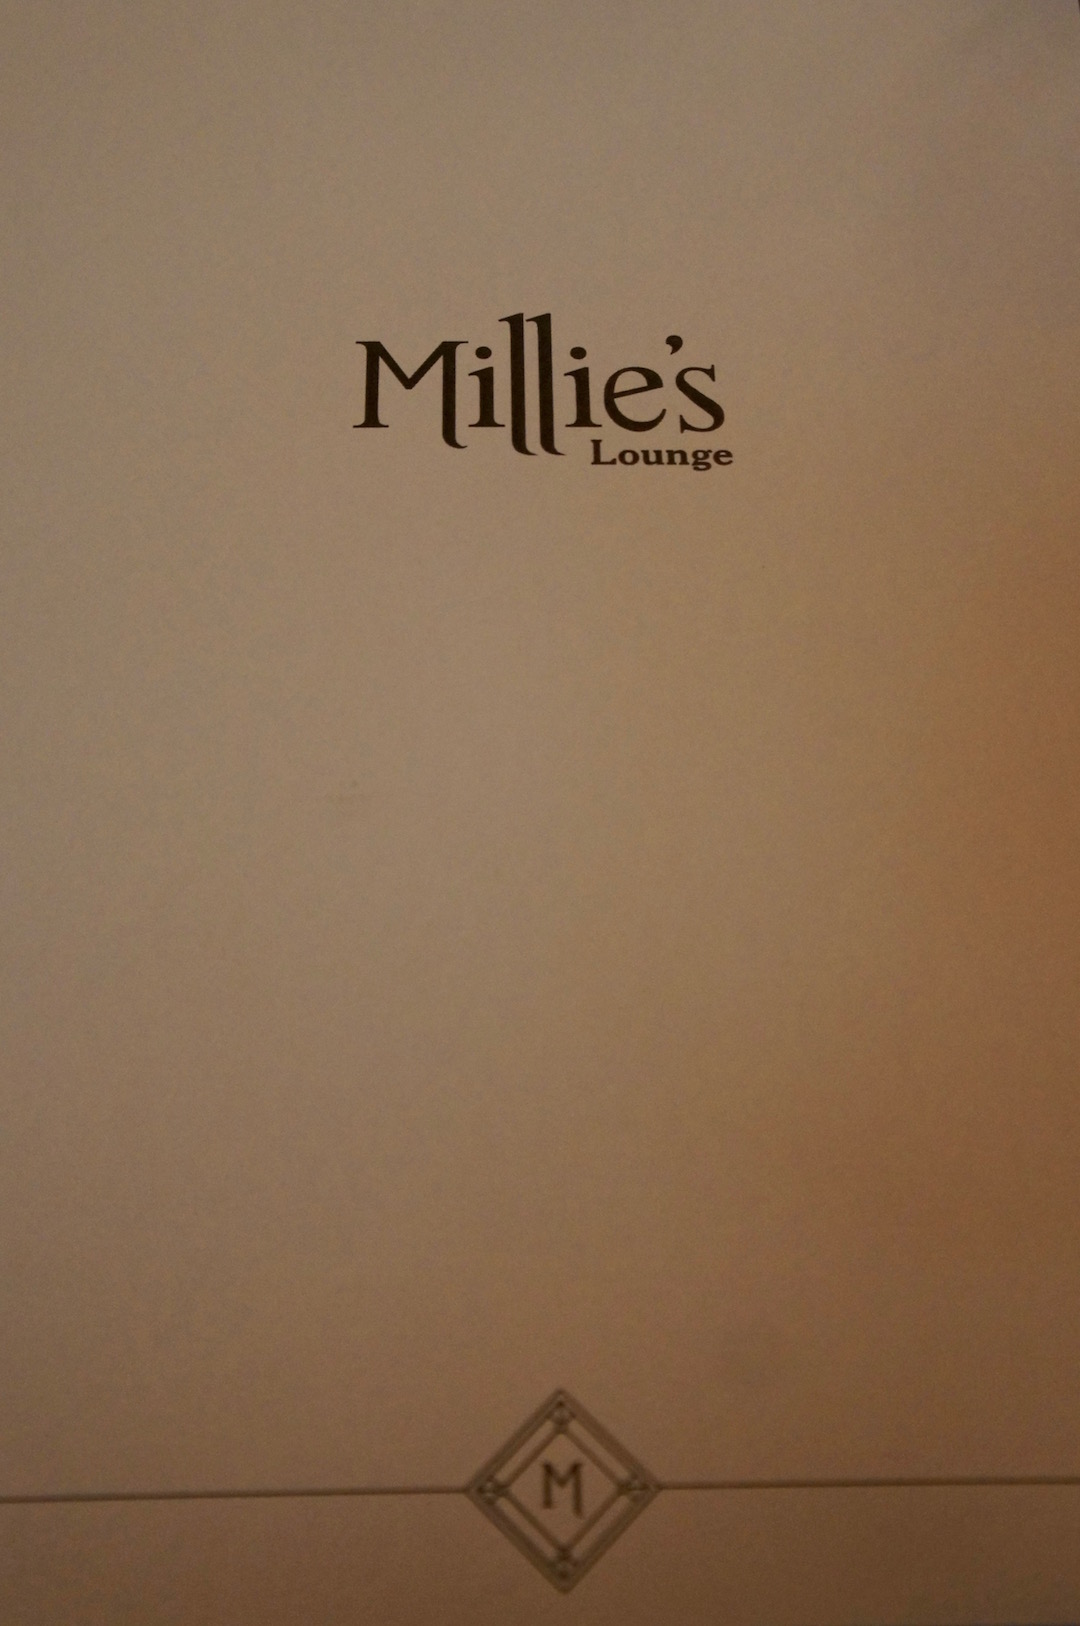 Millie's Lounge